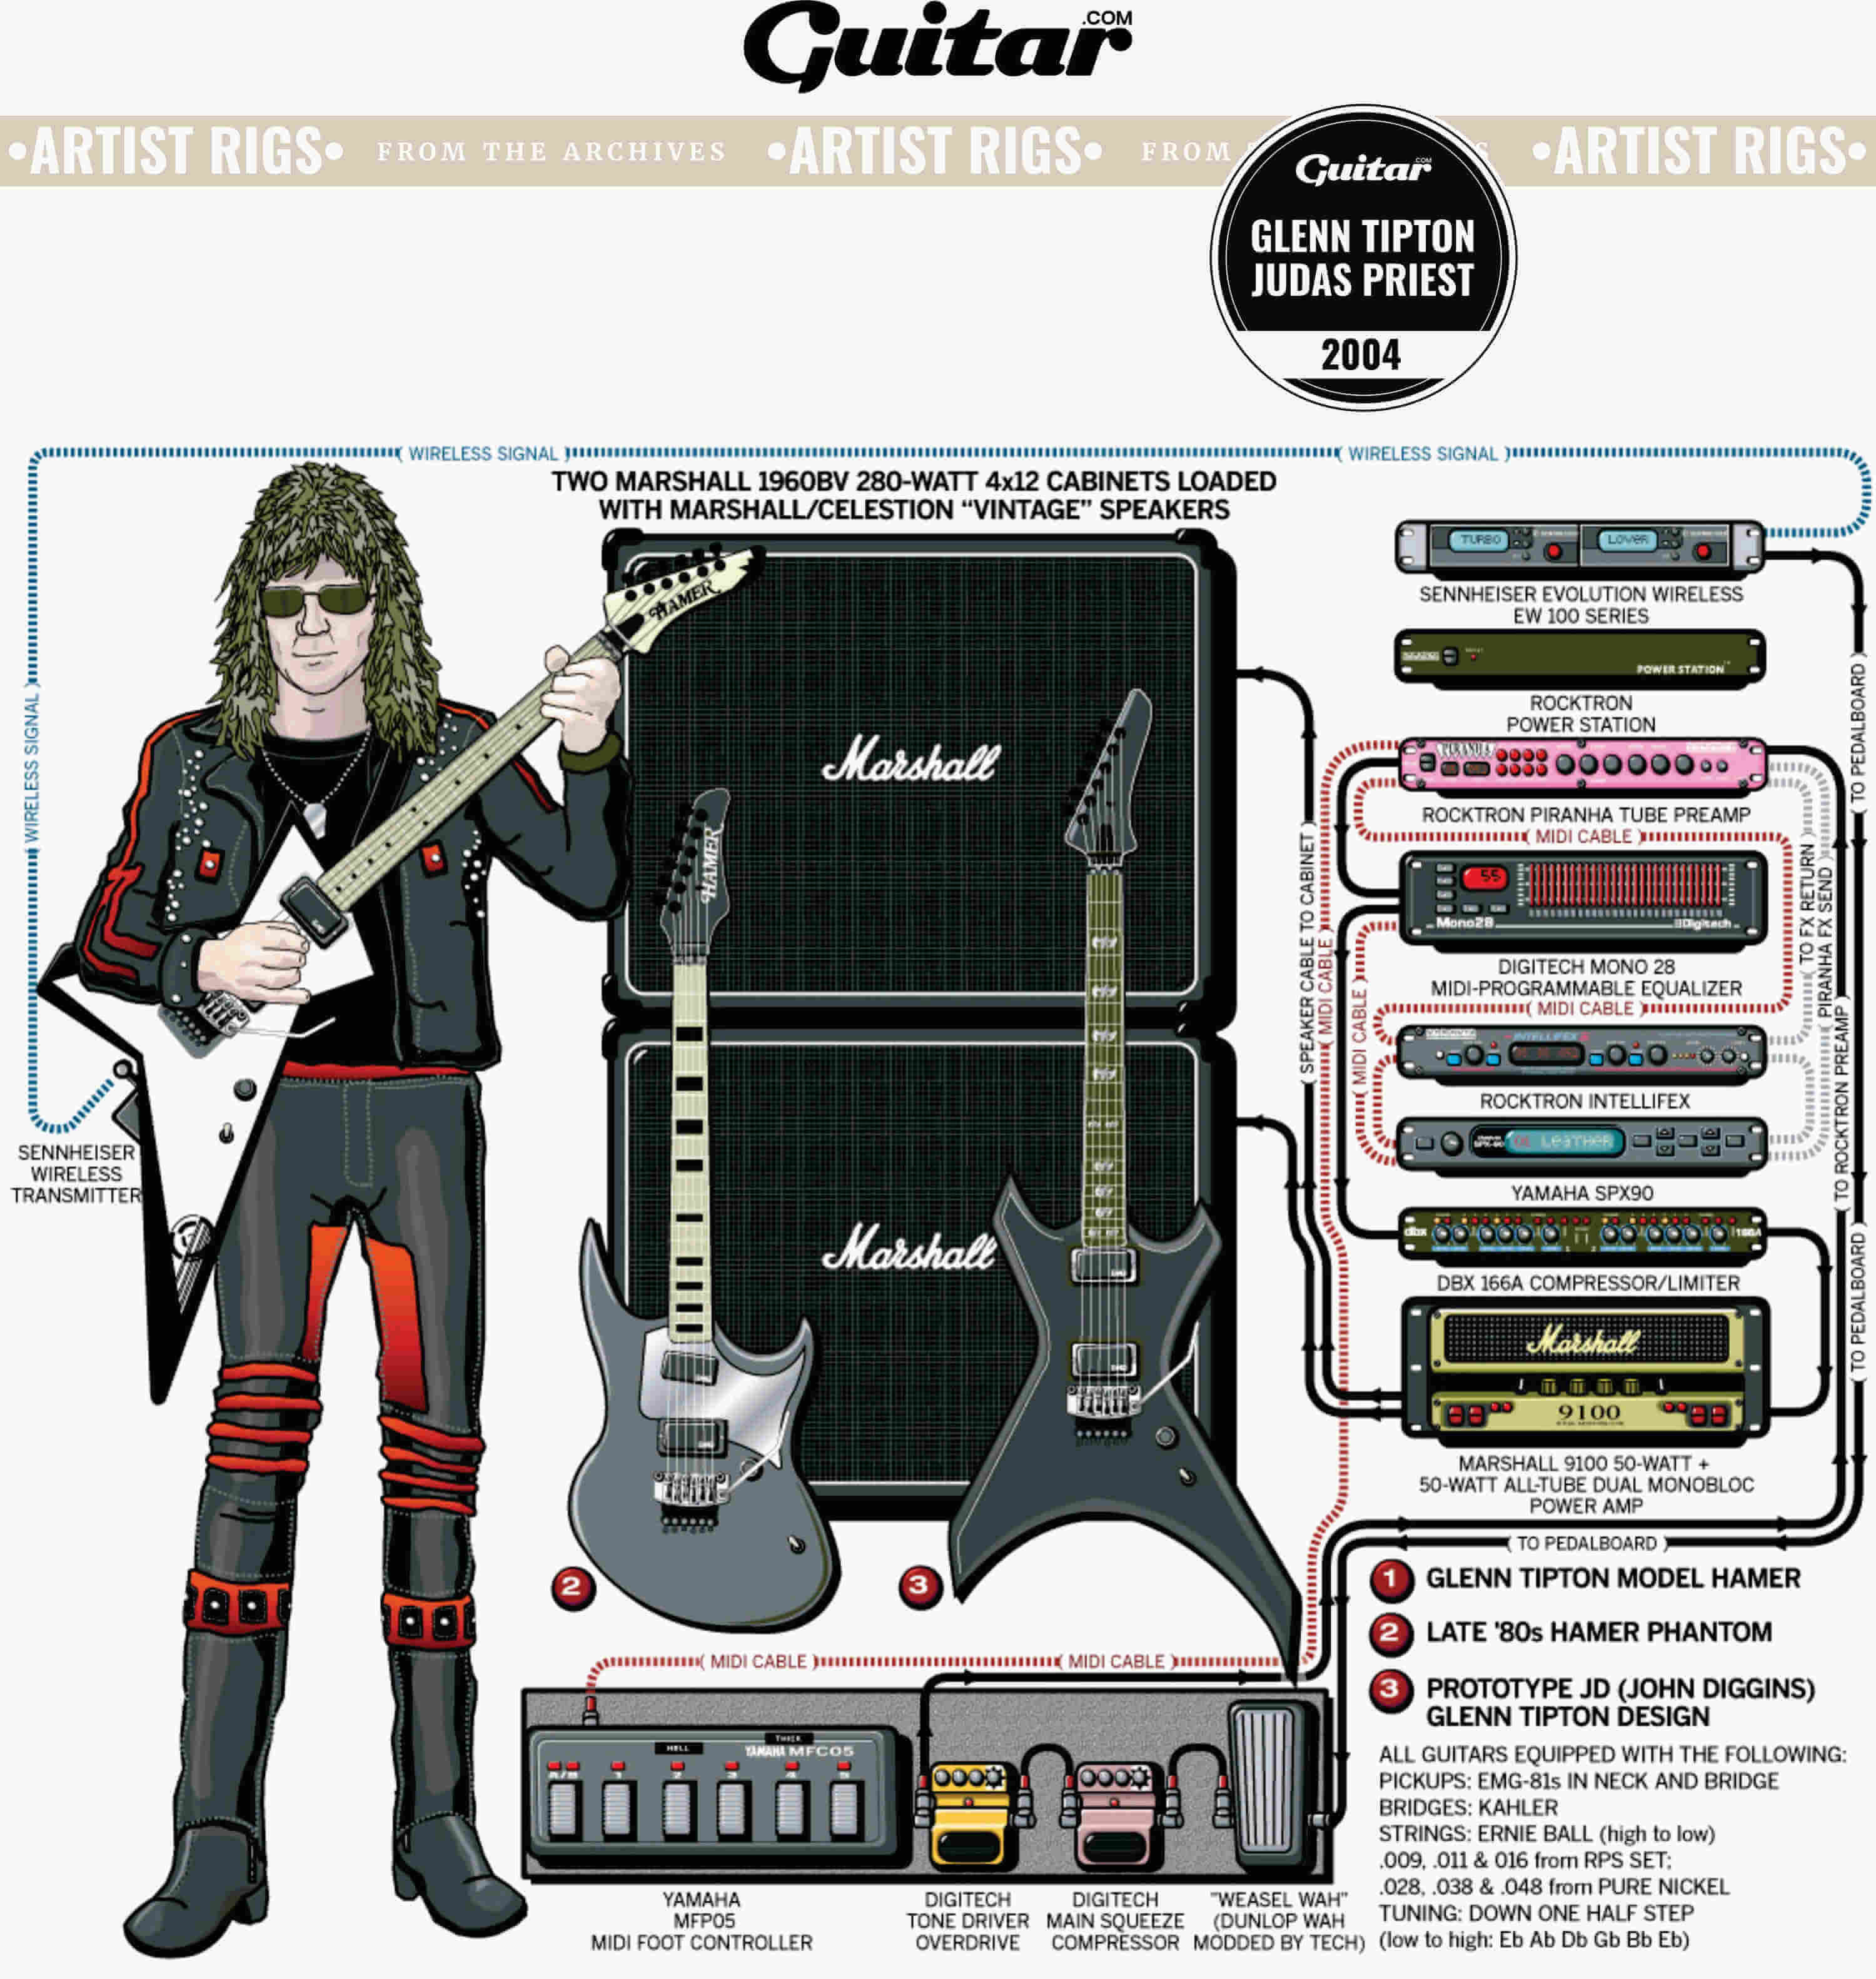 Rig Diagram: Glenn Tipton, Judas Priest (2004)